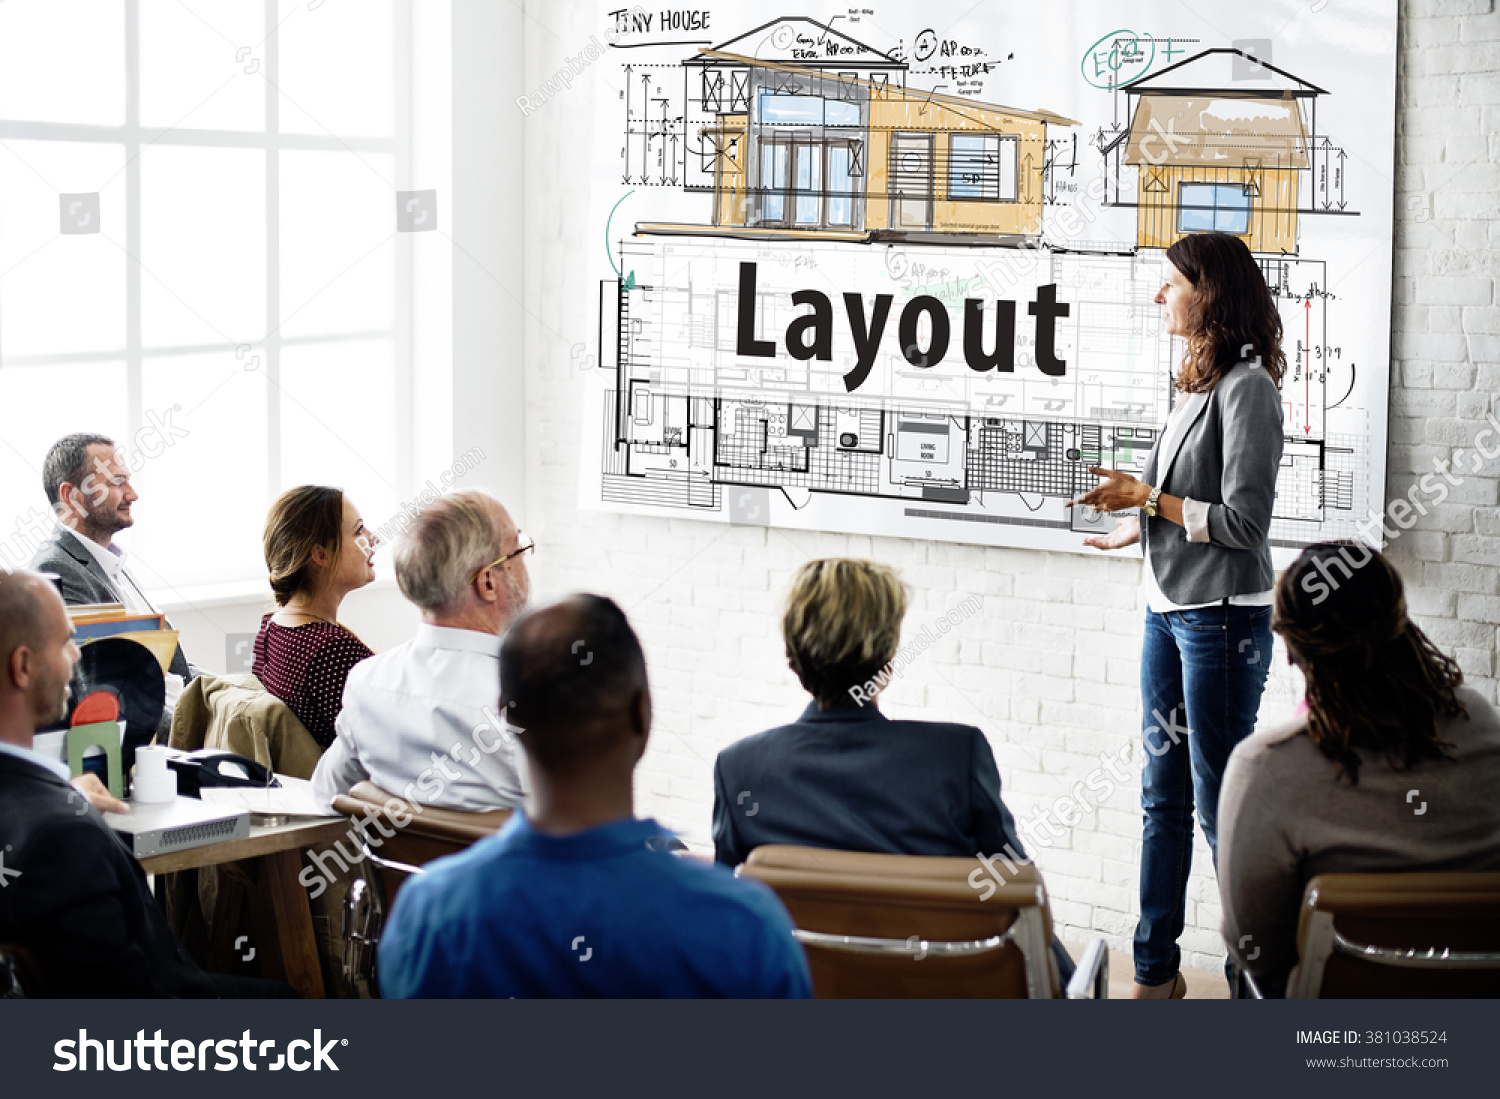 Layout blueprint design construction editing concept stock photo layout blueprint design construction editing concept malvernweather Choice Image